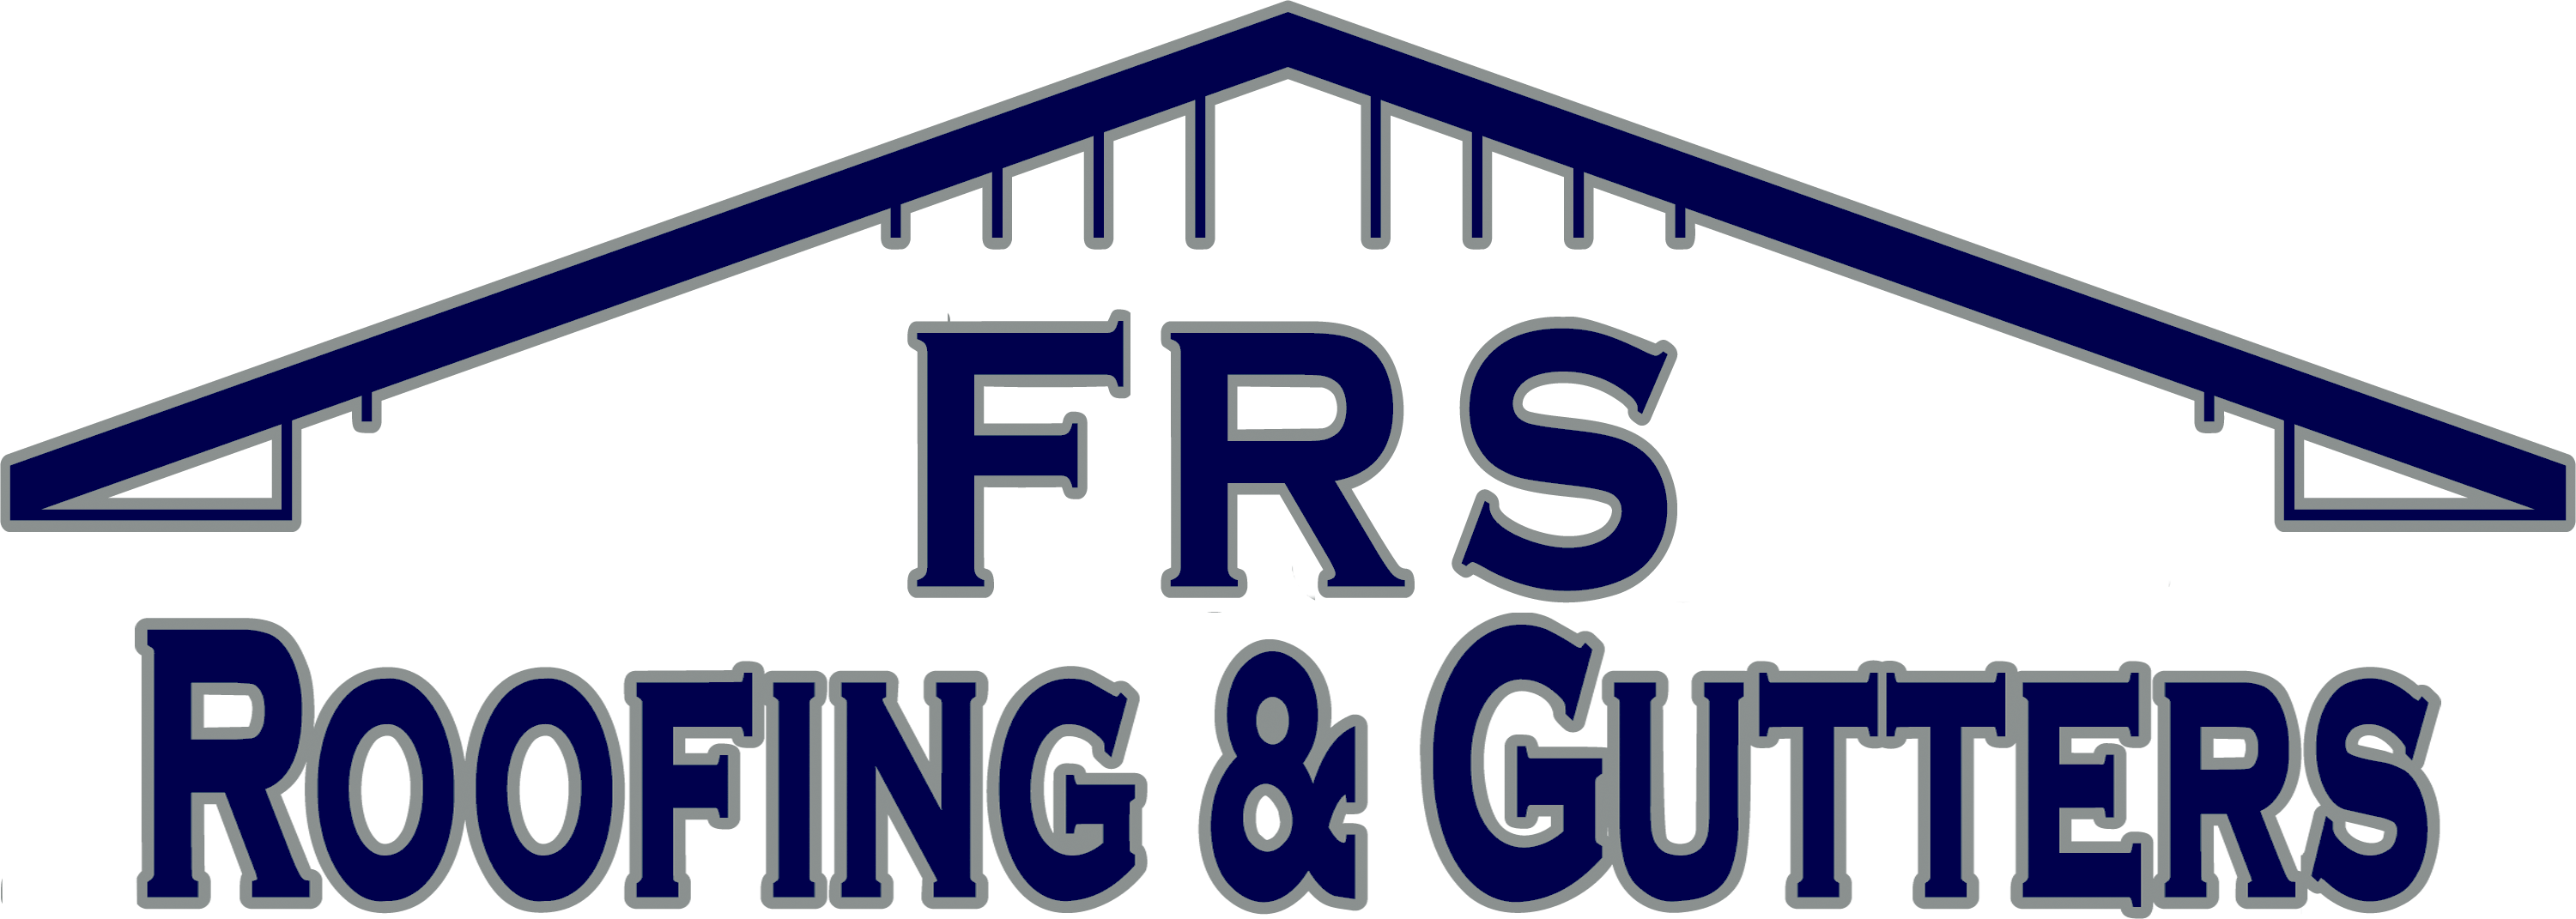 Frs Free Gutter Special Frs Roofing And Gutter Services